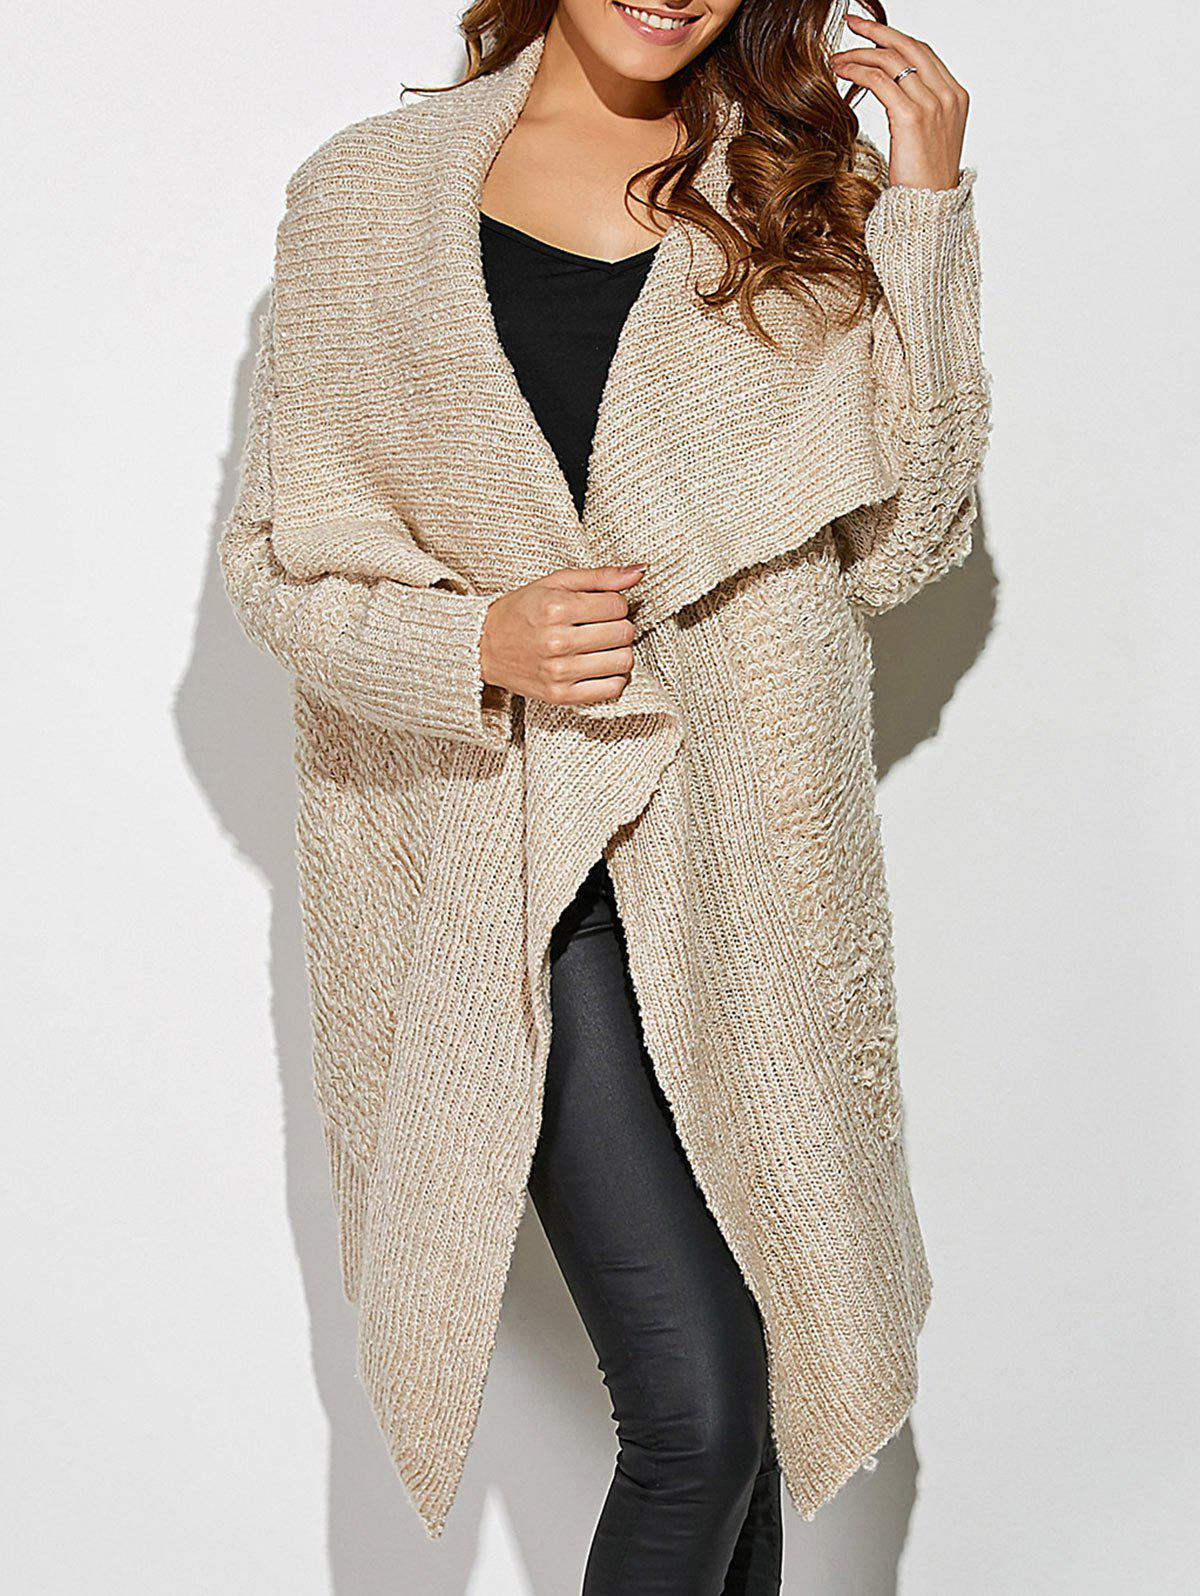 Asymmetrical Open Front Knit Cardigan inc new beige women s small s marled knit open front cardigan sweater $89 201